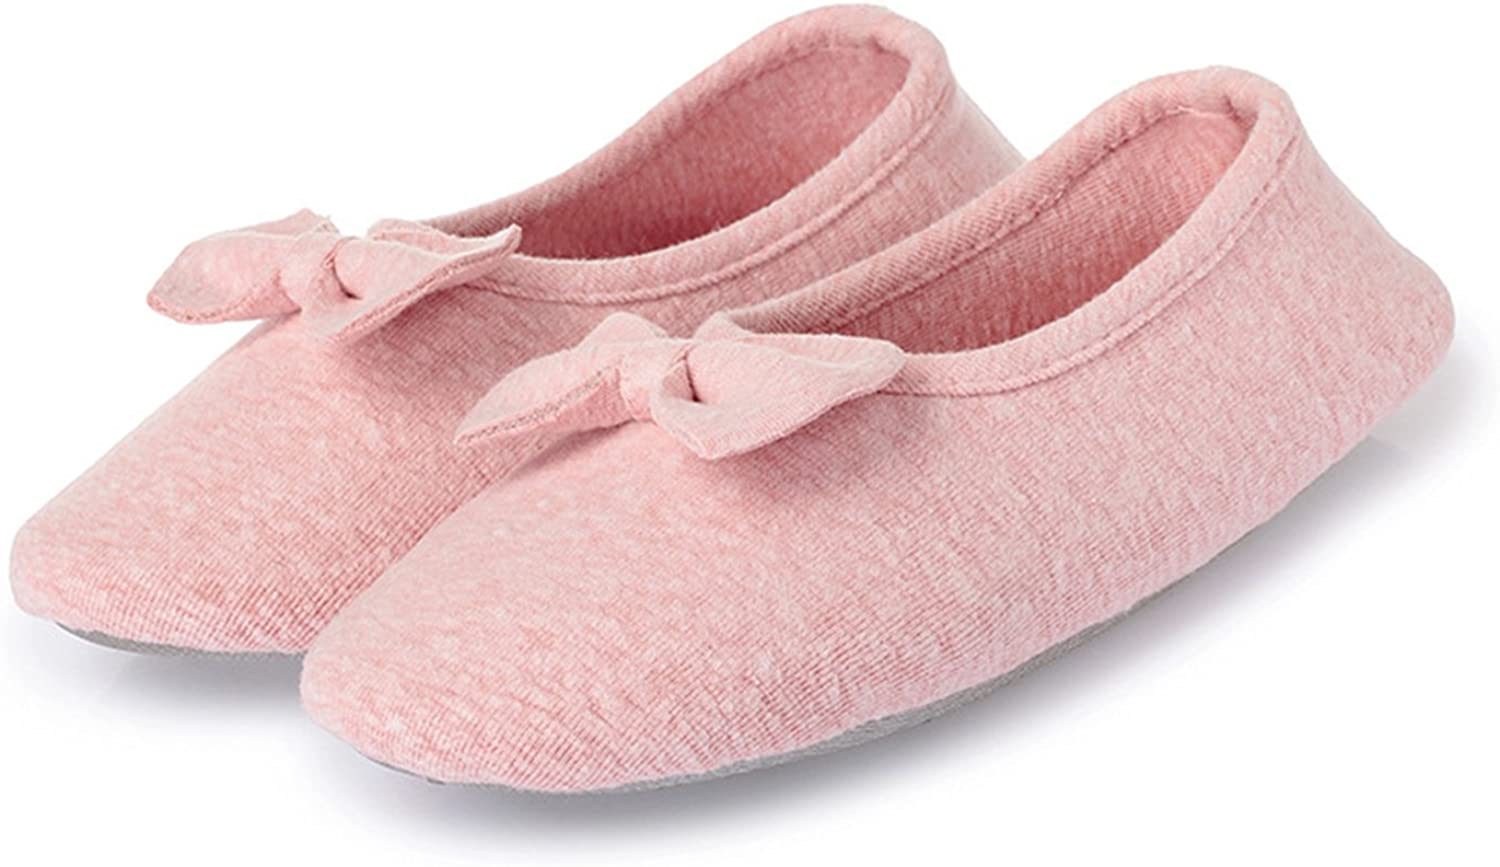 L-RUN Women's Ballerina Style Slippers Anti-Skid House Indoor shoes Washable